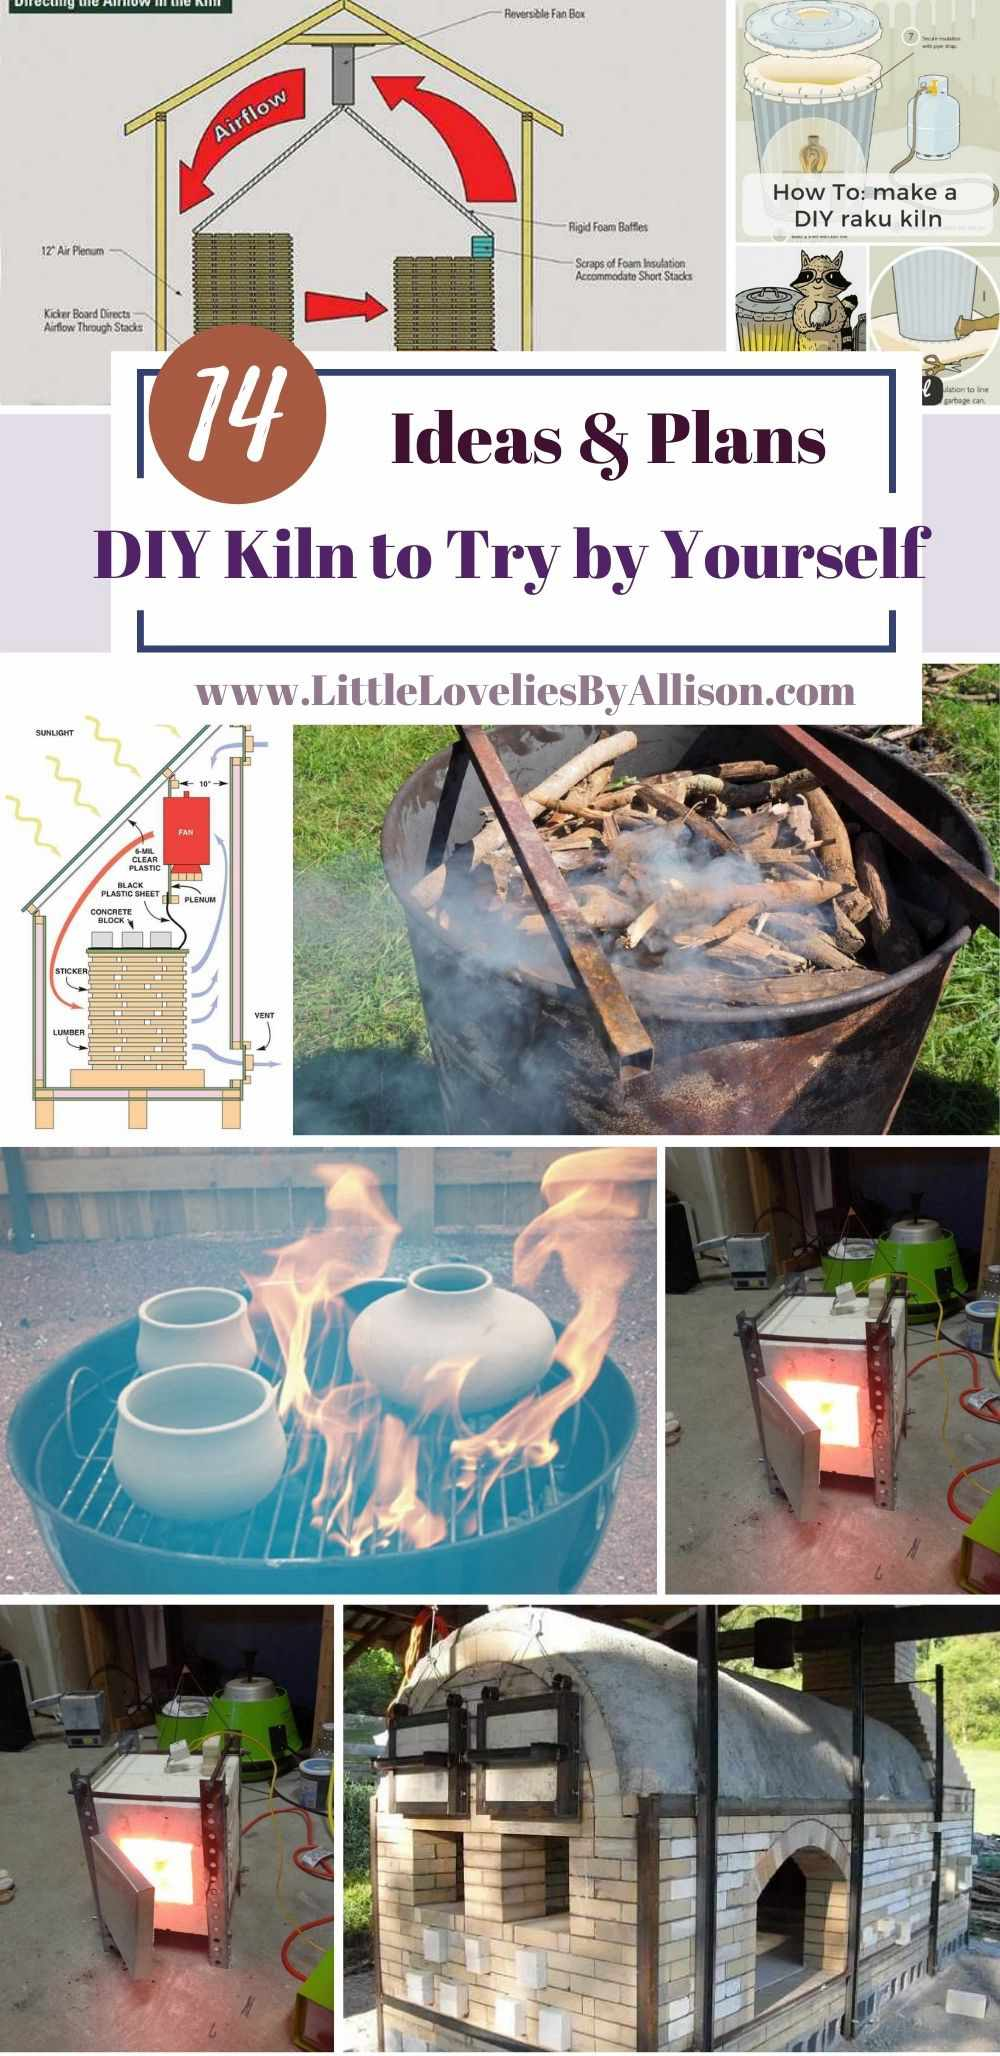 14 Cost-Effective Ideas on DIY Kiln to Try by Yourself